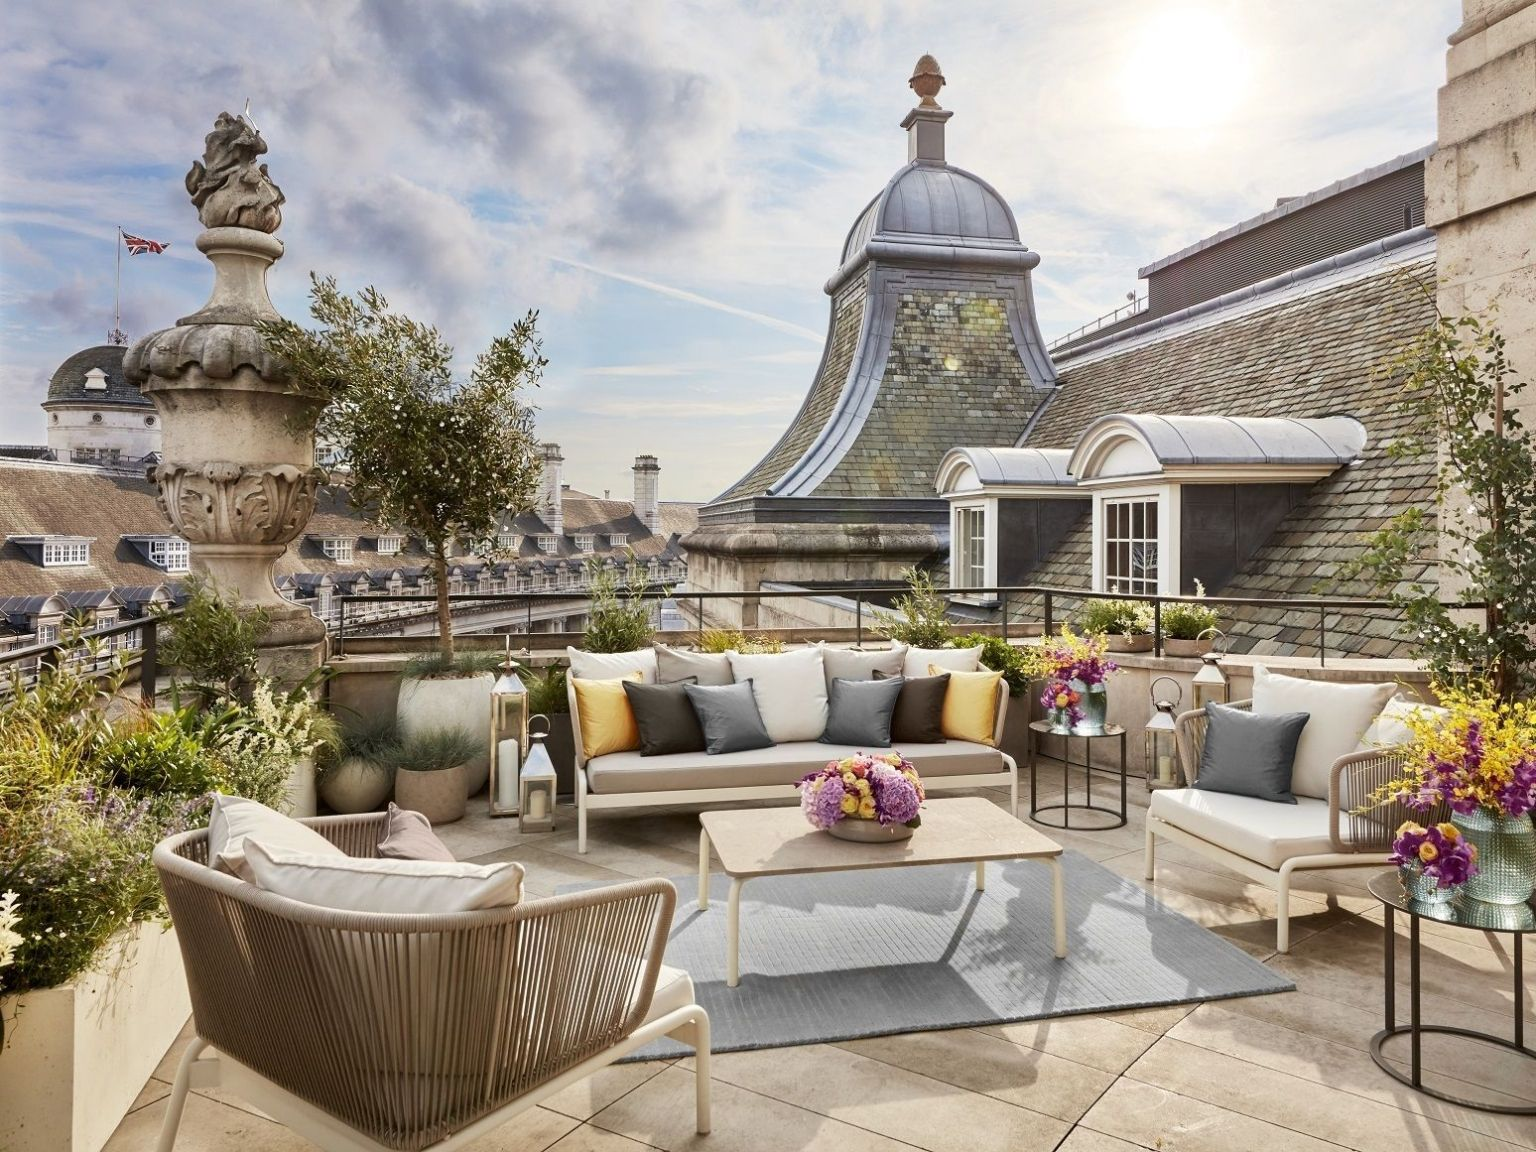 dome penthouse hotel cafe royal london terrace view